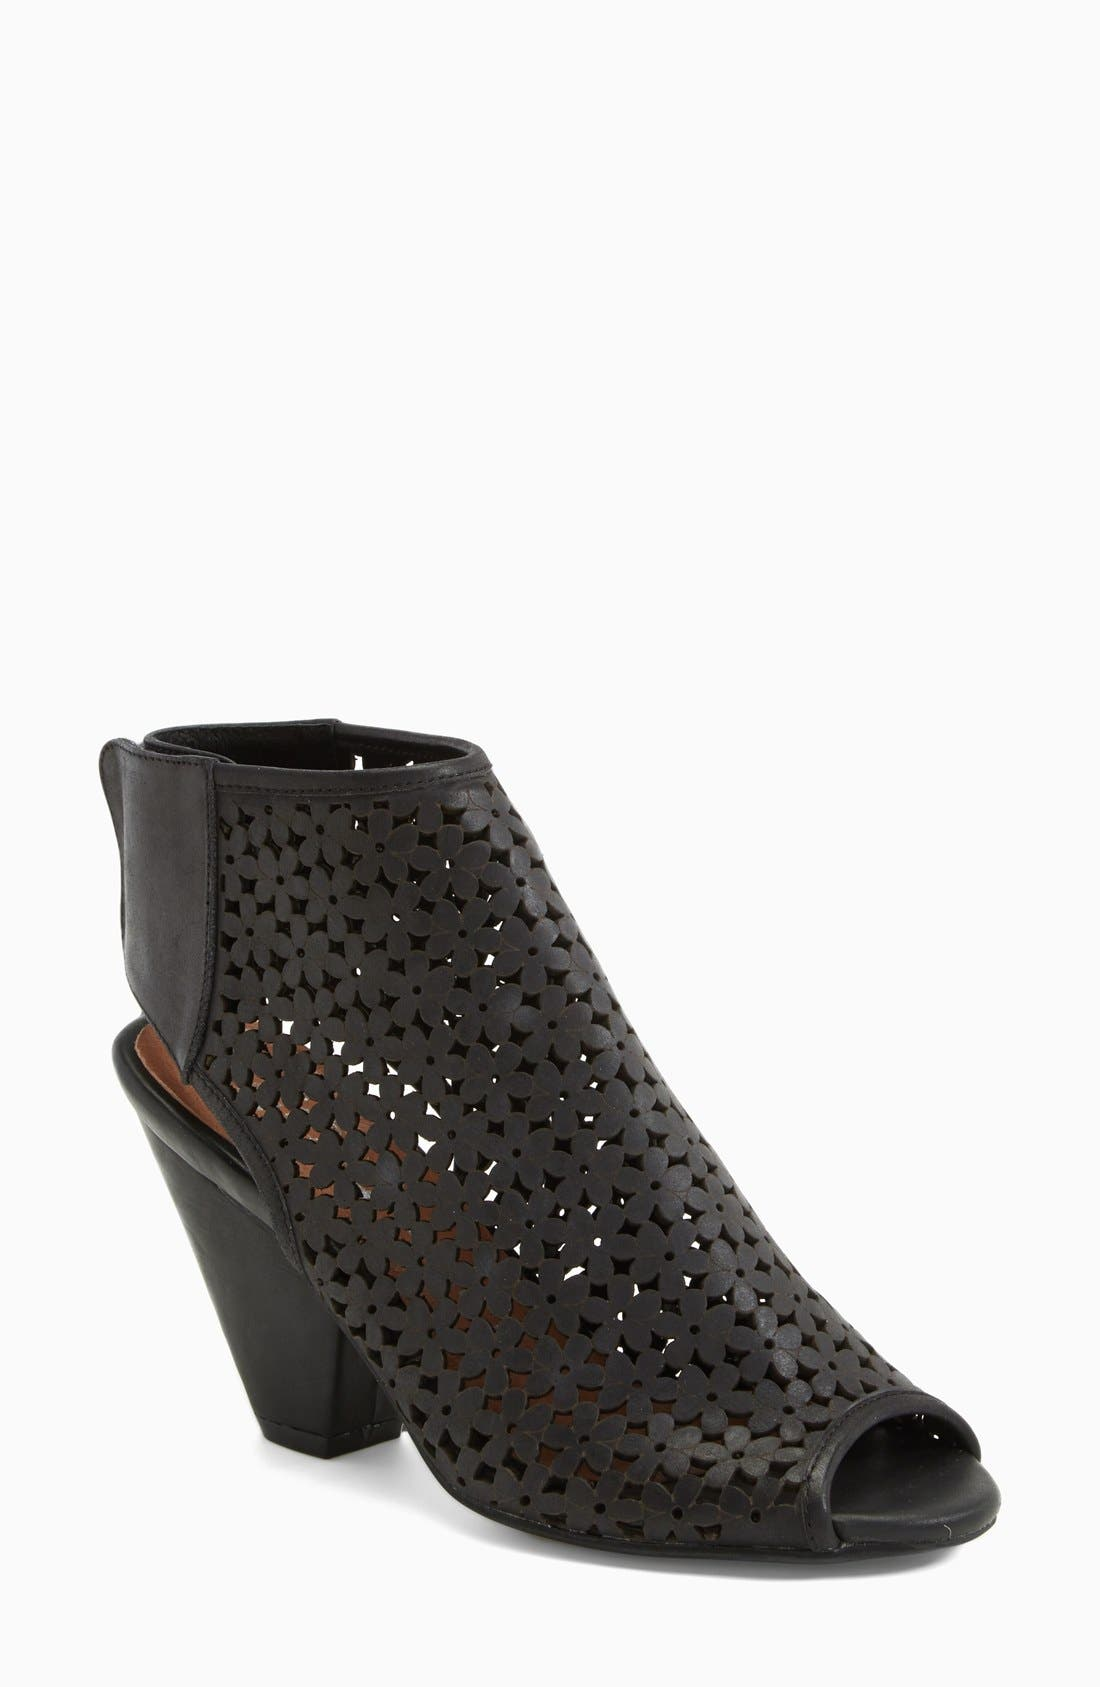 Main Image - Jeffrey Campbell 'Premier' Leather Ankle Boot (Women)